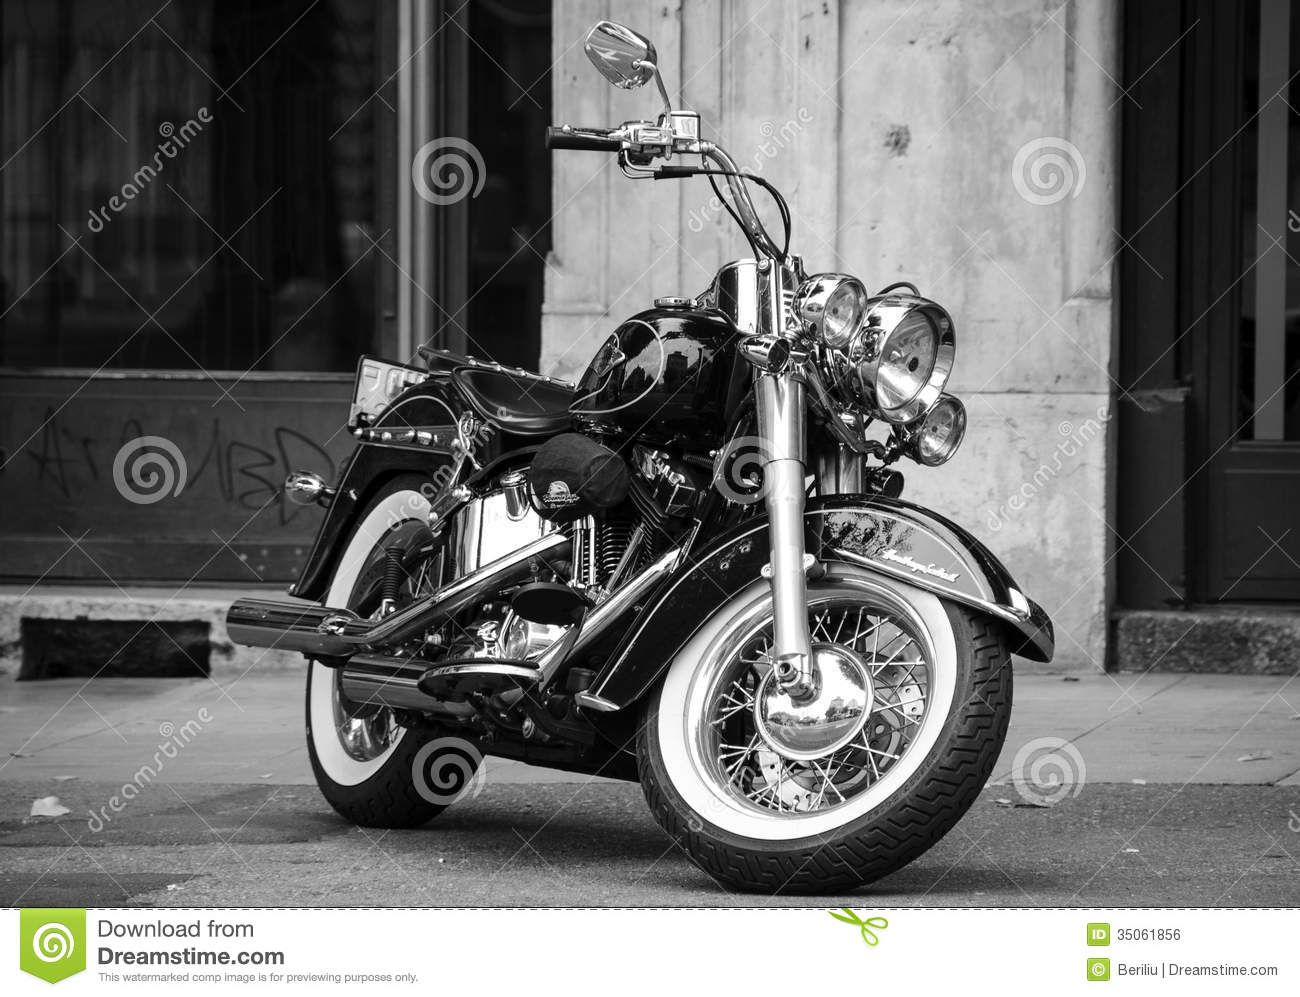 Black harley harley davidson softail motorcycle in black and white royalty free stock image